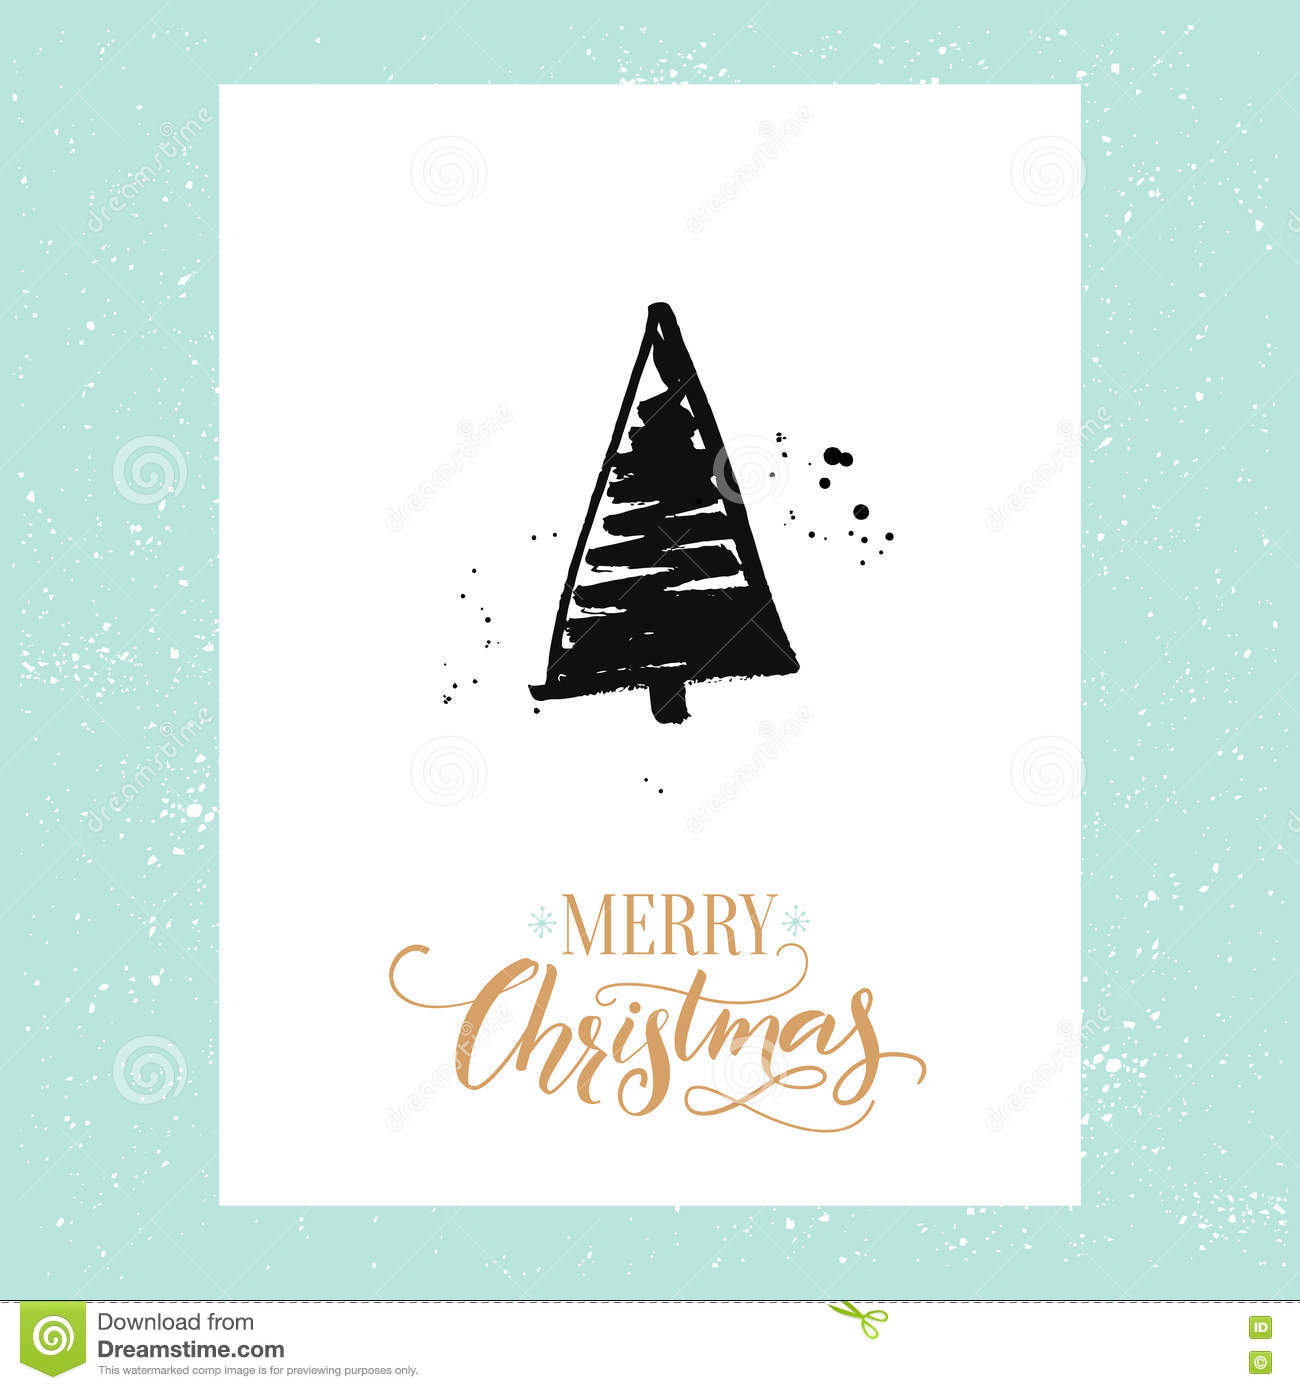 Merry christmas simple greeting card with hand drawn christmas tree merry christmas simple greeting card with hand drawn christmas tree vector design template with calligraphy type m4hsunfo